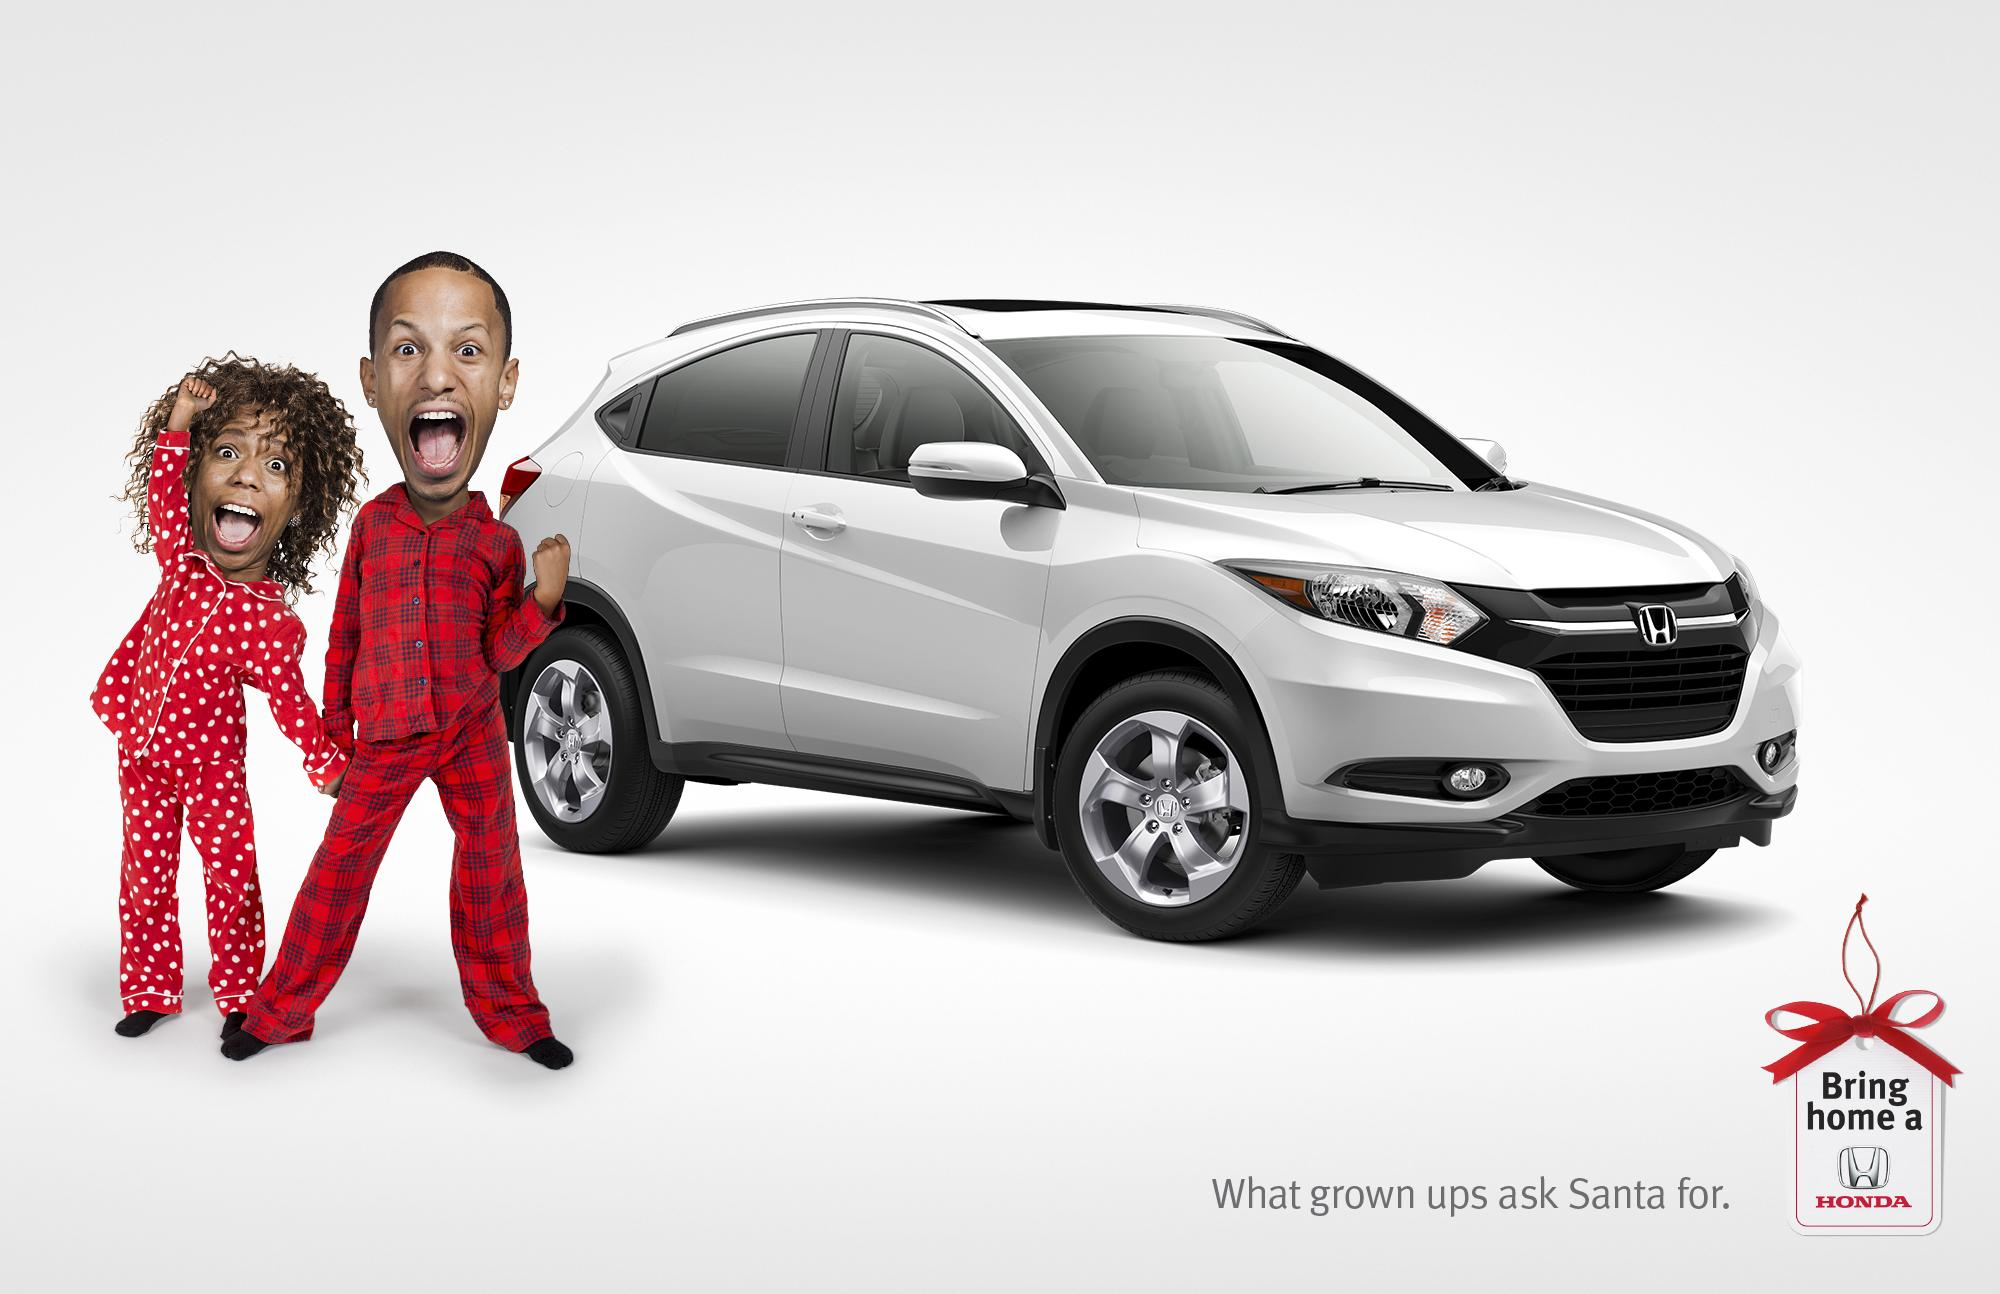 Honda Print Advert By Wax: Bring home a Honda - Santa | Ads of the